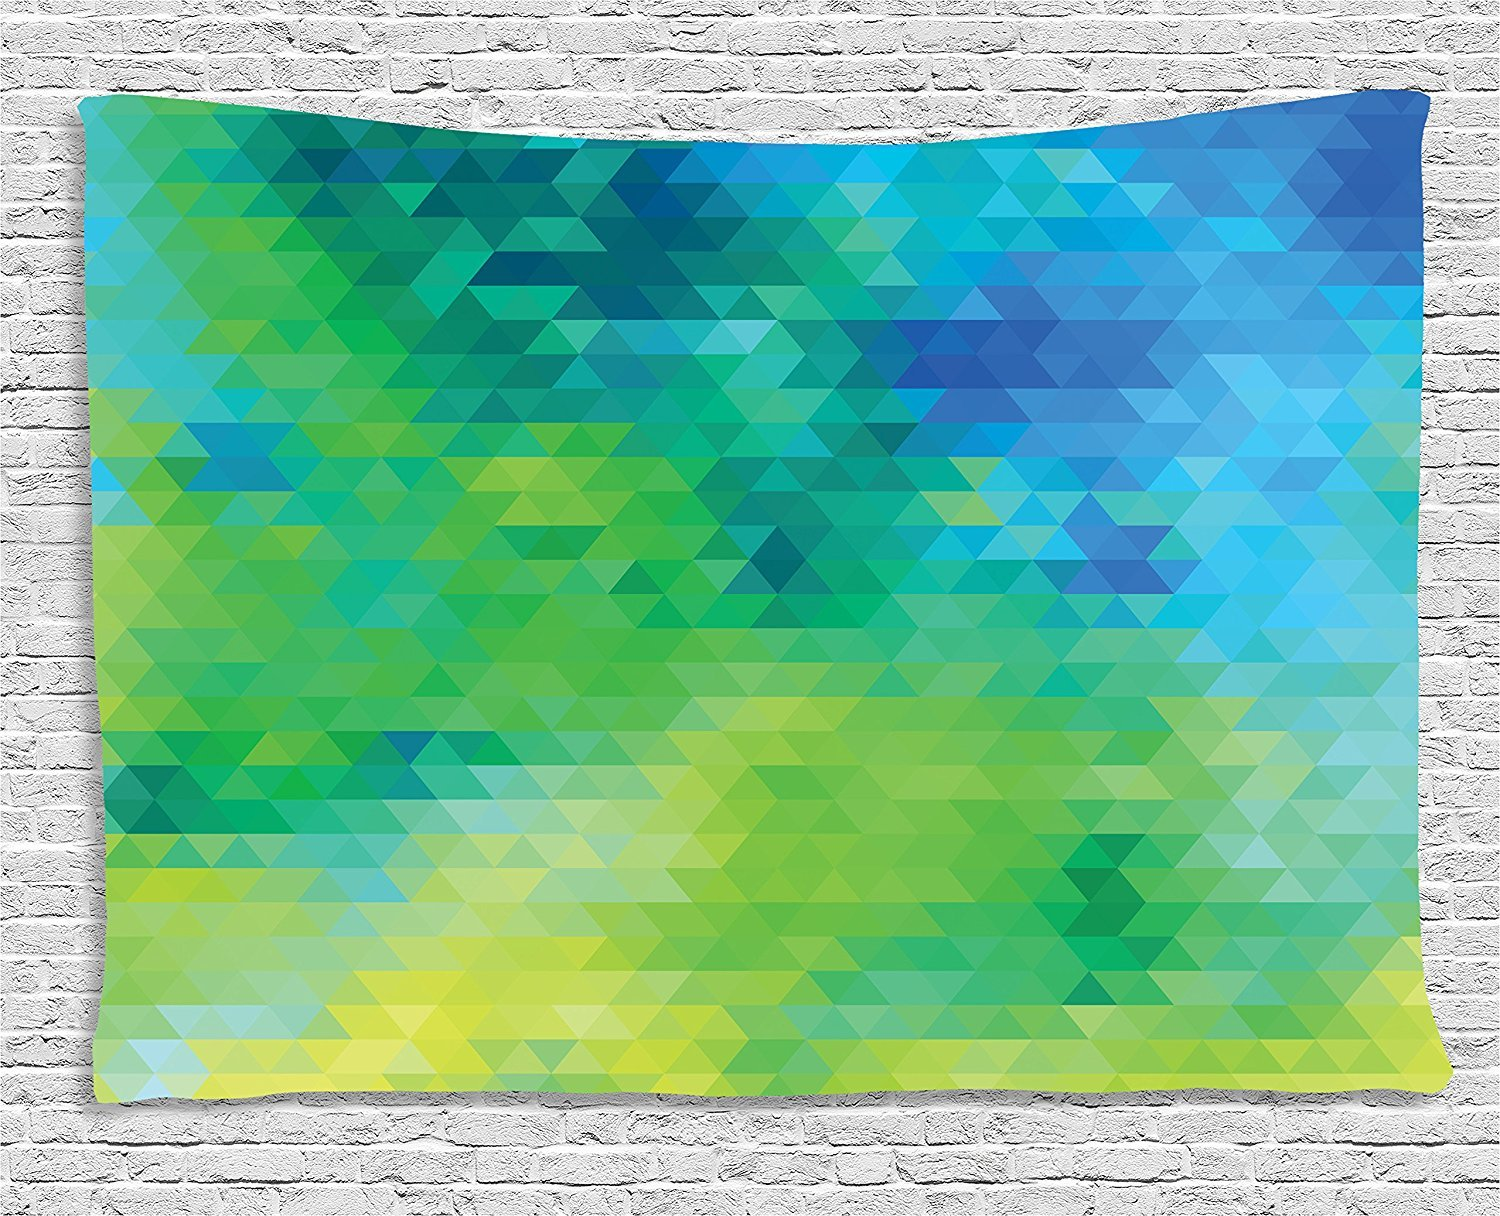 asddcdfdd Green and Blue Tapestry, Geometric Abstract Pattern with Triangles Ombre Inspired, Wall Hanging for Bedroom Living Room Dorm, 80 W X 60 L Inches, Turquoise Lime Green Yellow